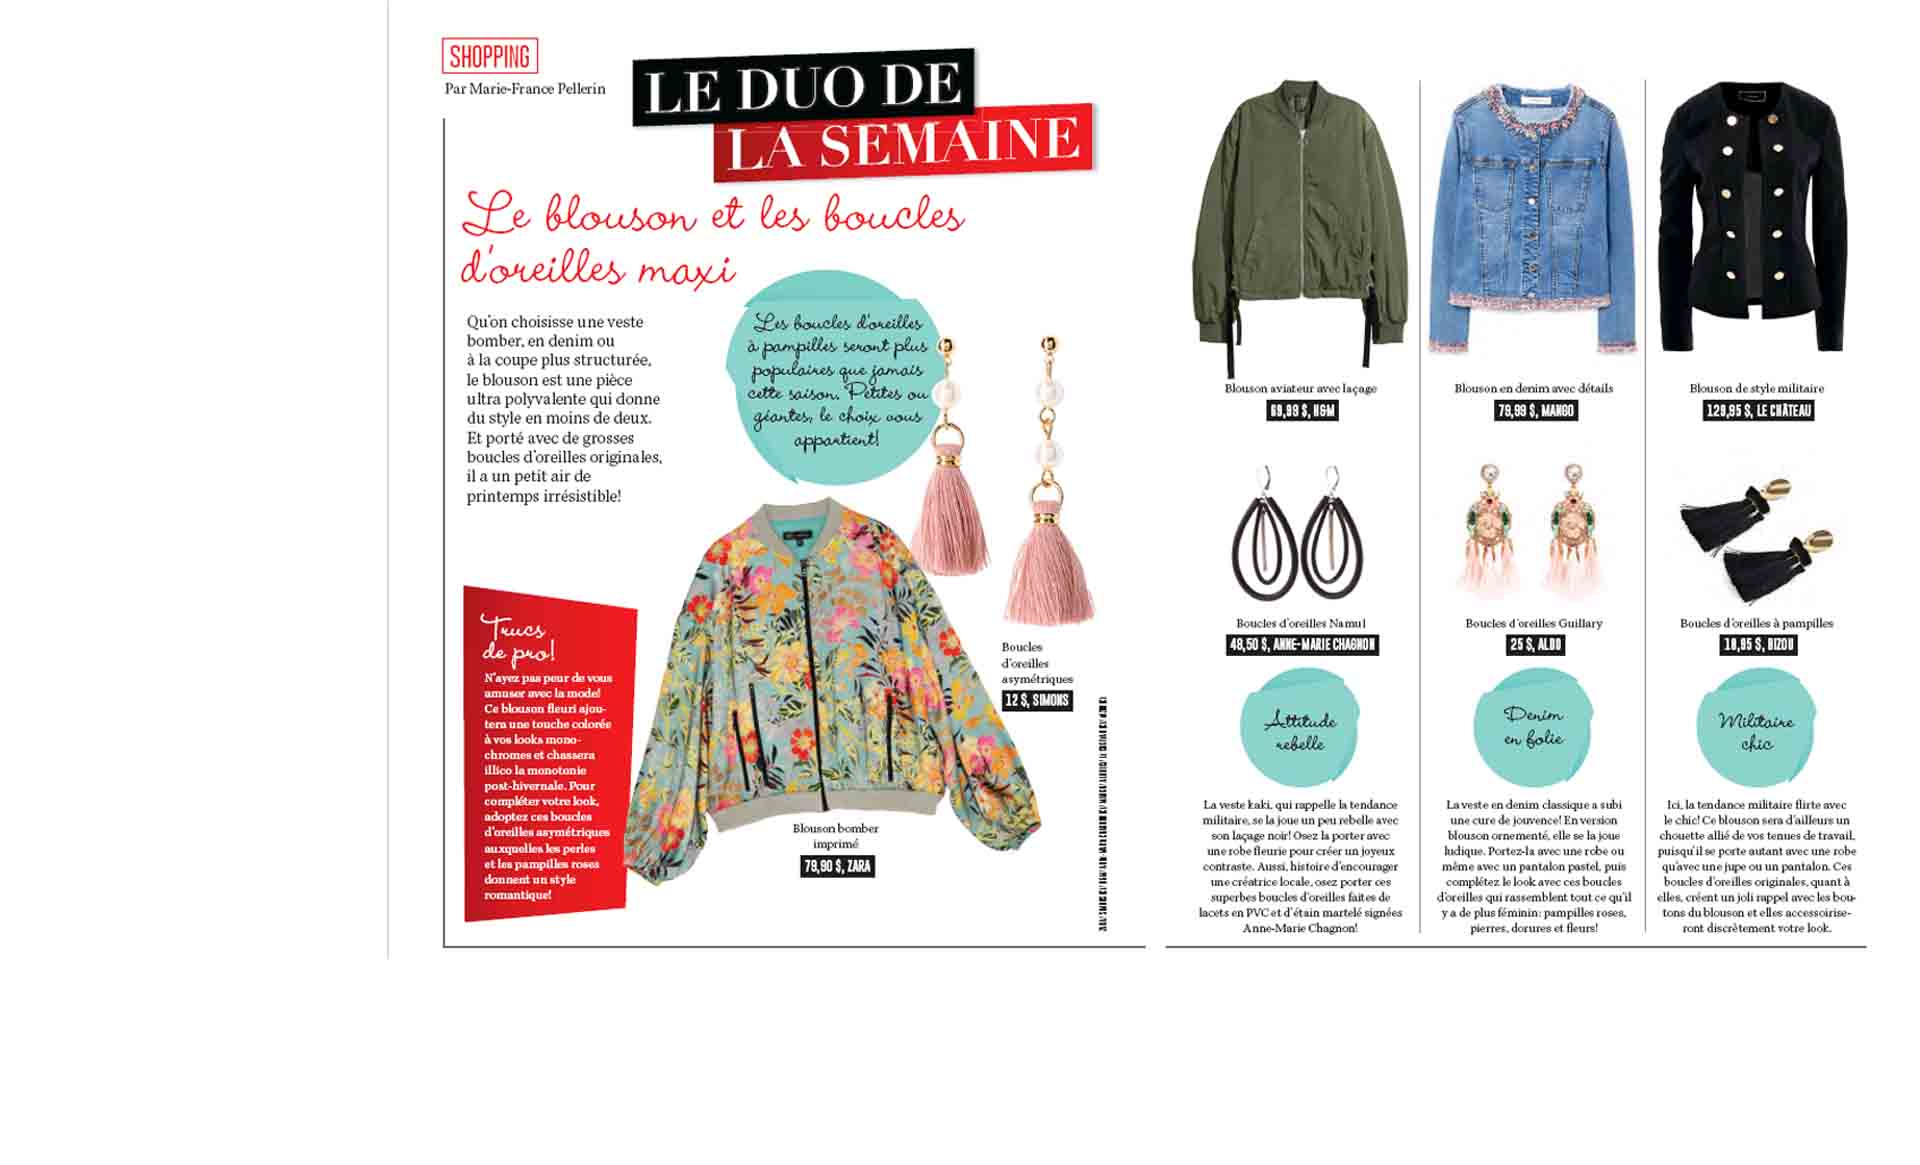 Namul earrings for a rock style – La semaine magazine